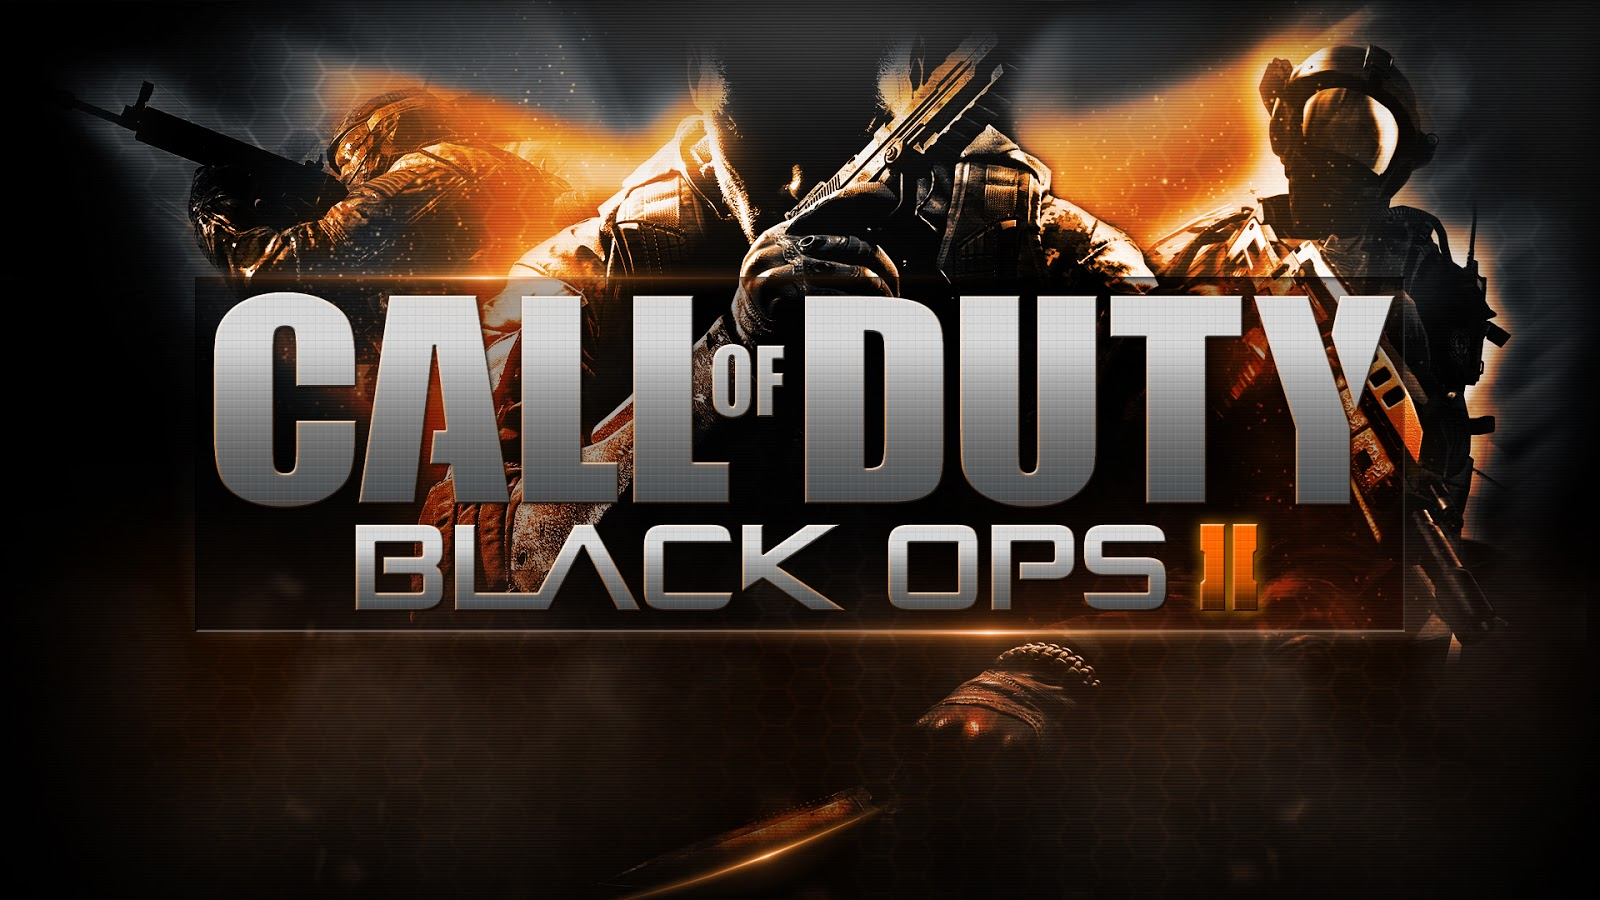 HD WALLPAPERS: Call of Duty Black ops 2 HD Wallpapers